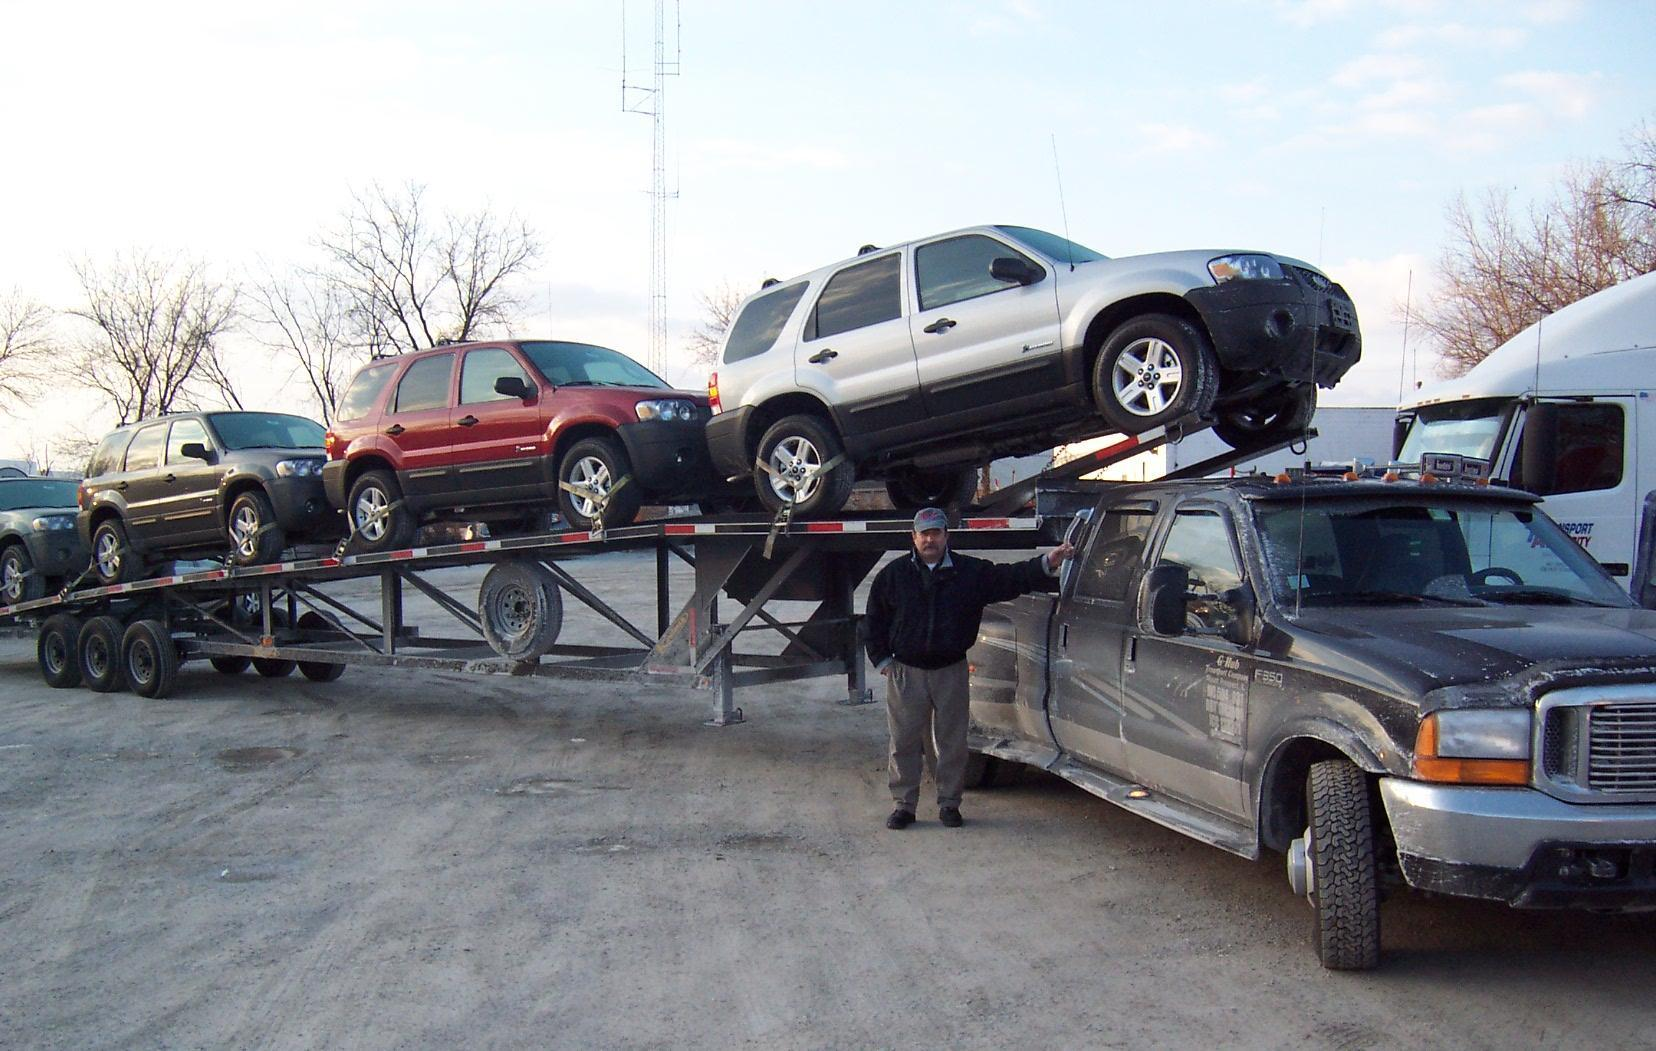 Vehicle Transport Quote Ghub Auto Transport  Reviews And Ratings Of Auto Transport